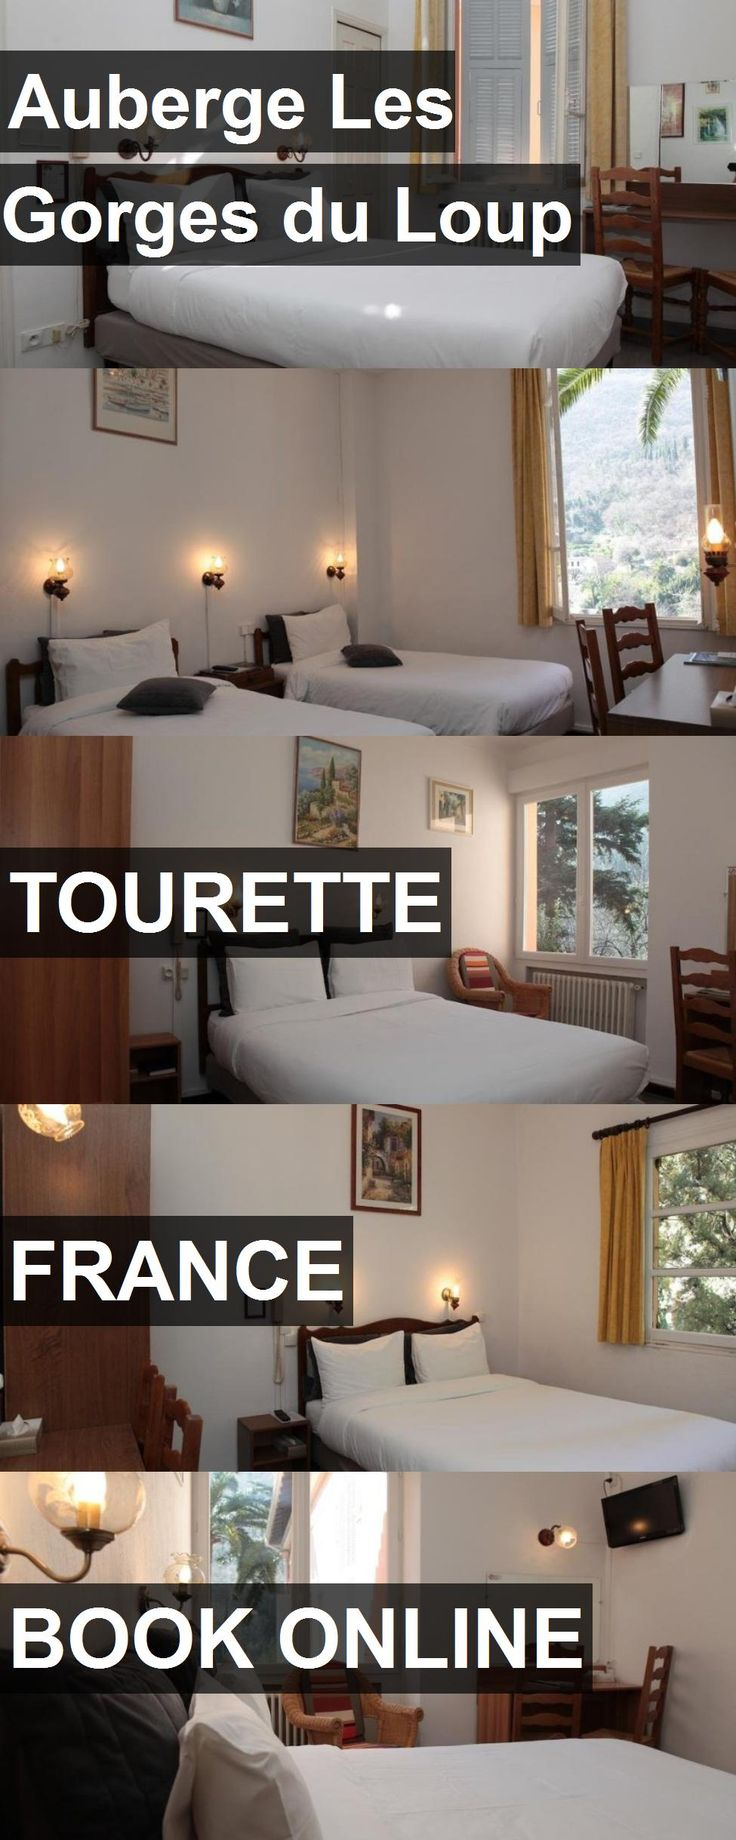 Hotel Auberge Les Gorges du Loup in Tourette, France. For more information, photos, reviews and best prices please follow the link. #France #Tourette #travel #vacation #hotel